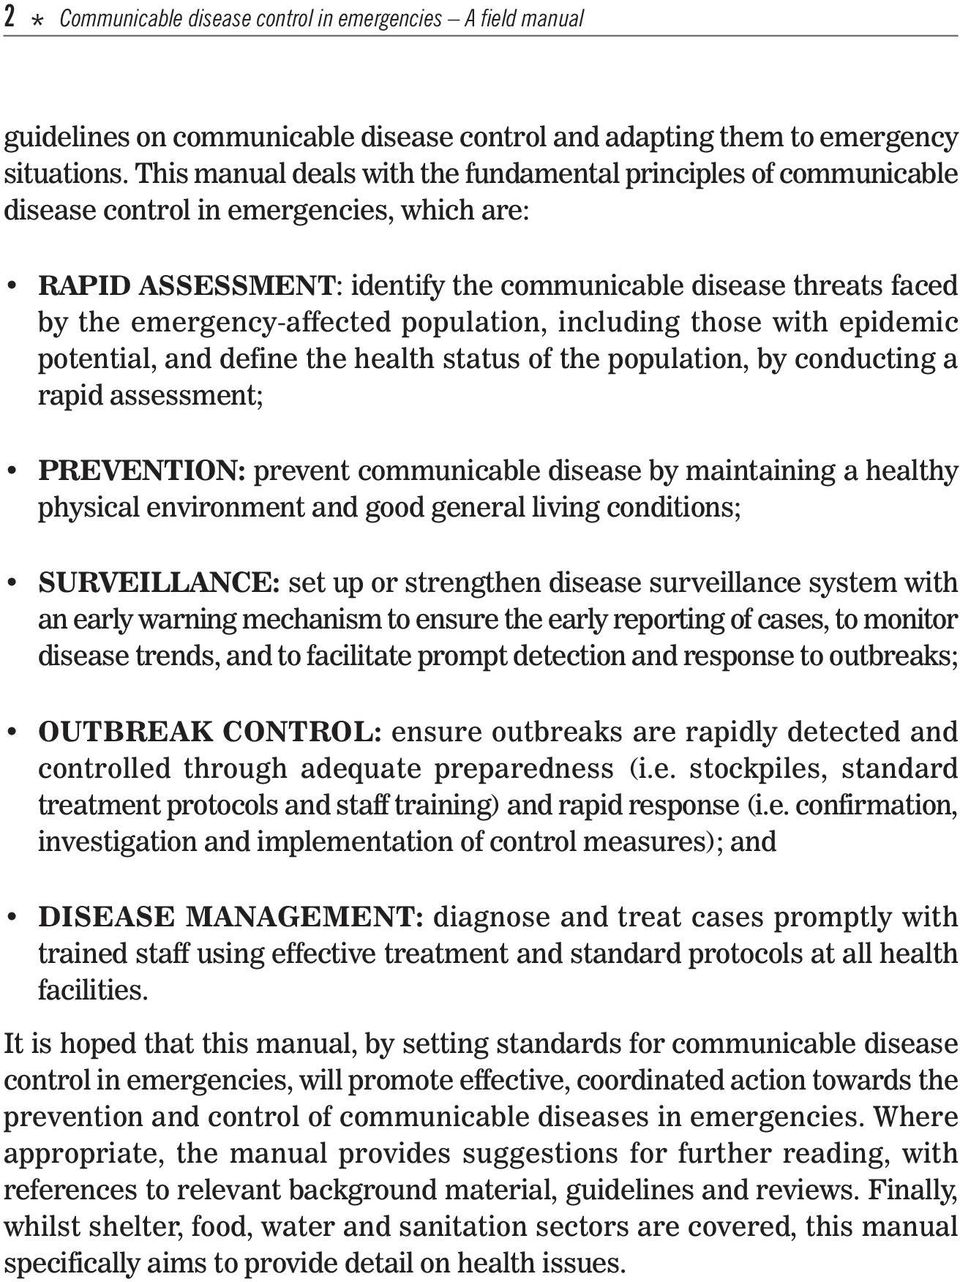 emergency-affected population, including those with epidemic potential, and define the health status of the population, by conducting a rapid assessment; PREVENTION: prevent communicable disease by